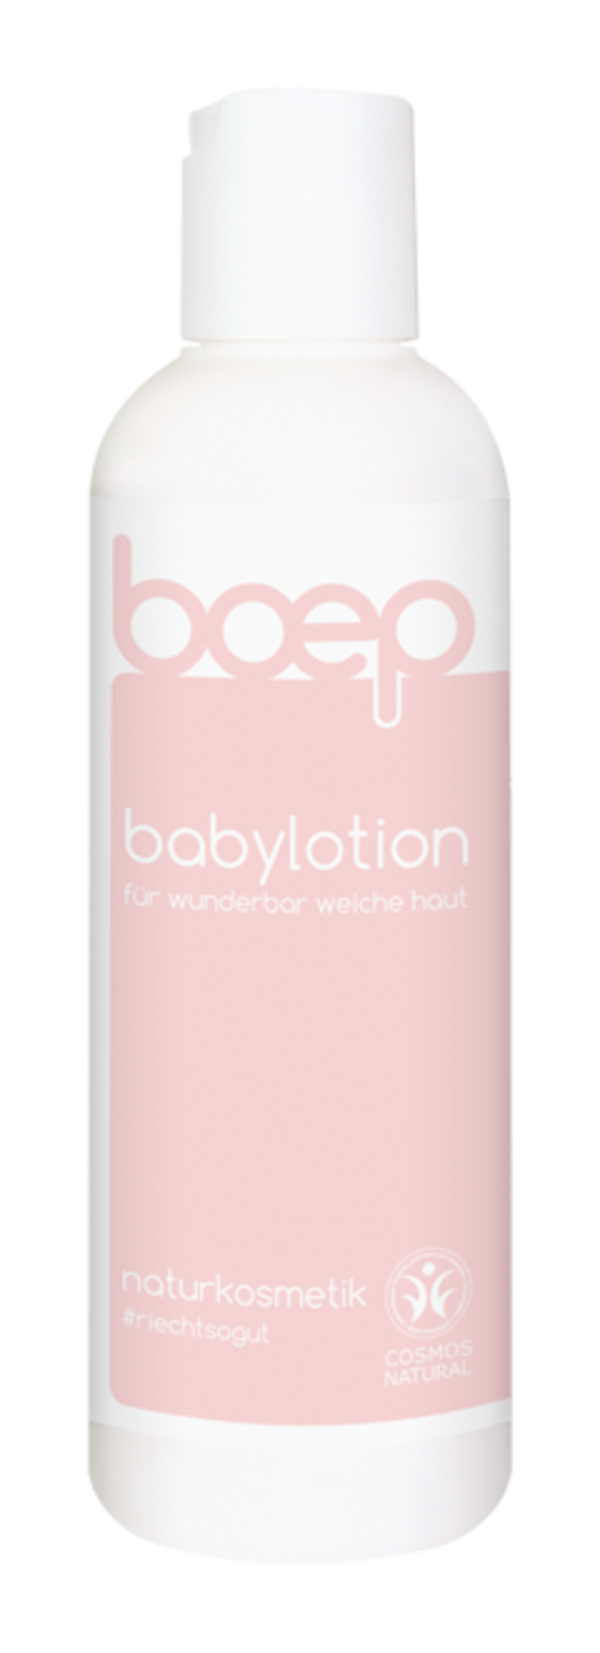 Kids Boep Creams & Lotions For Bottoms And Body